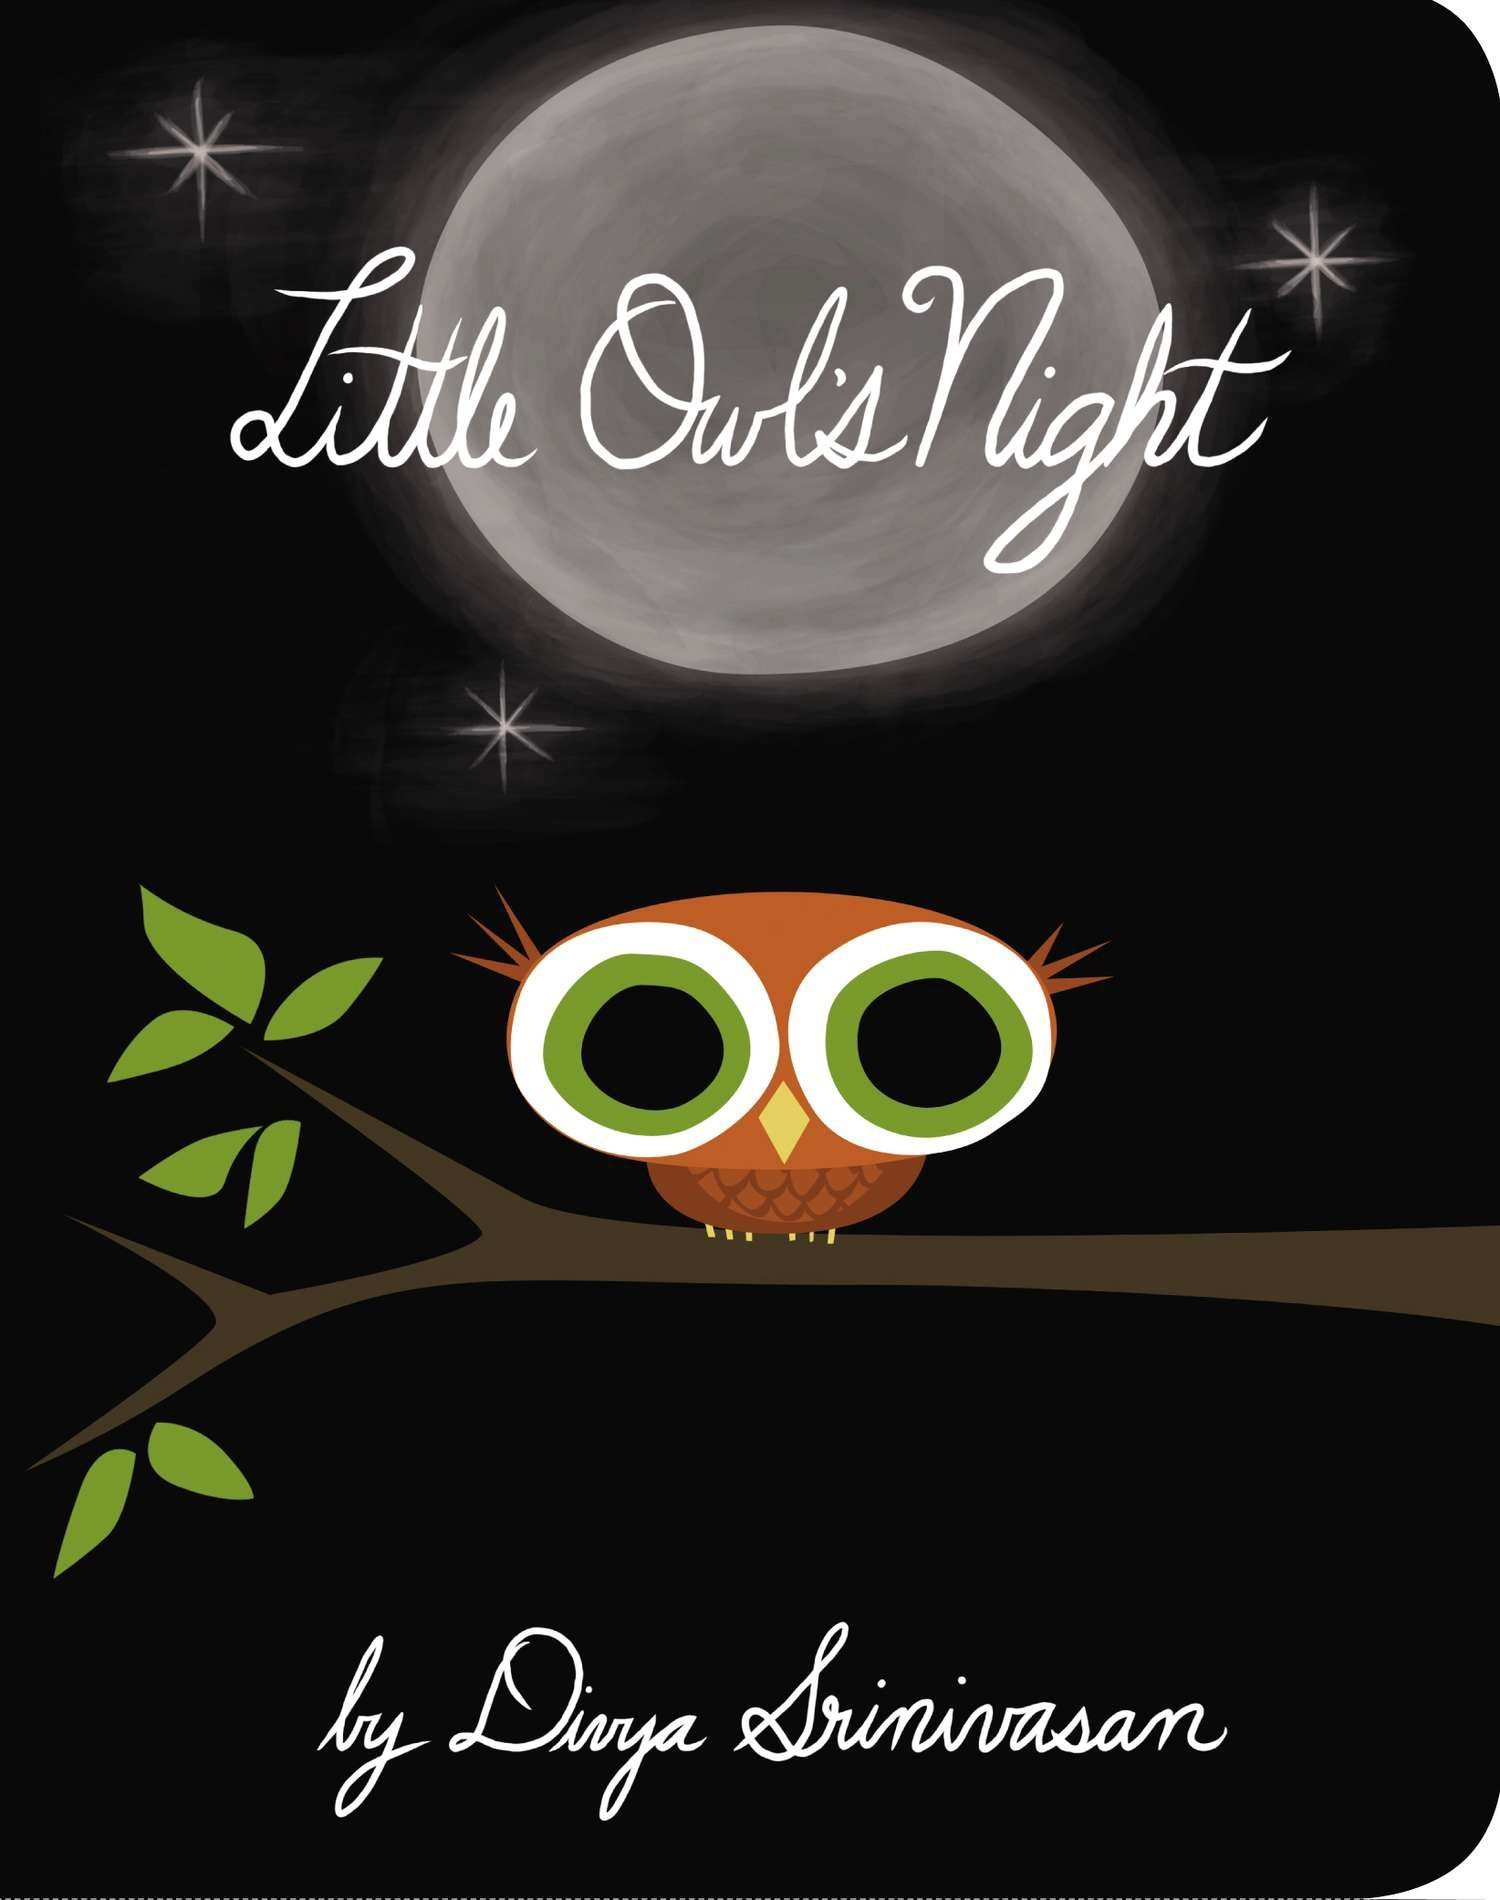 Little Owl's Night: Srinivasan, Divya: 9780670015795: Amazon.com: Books